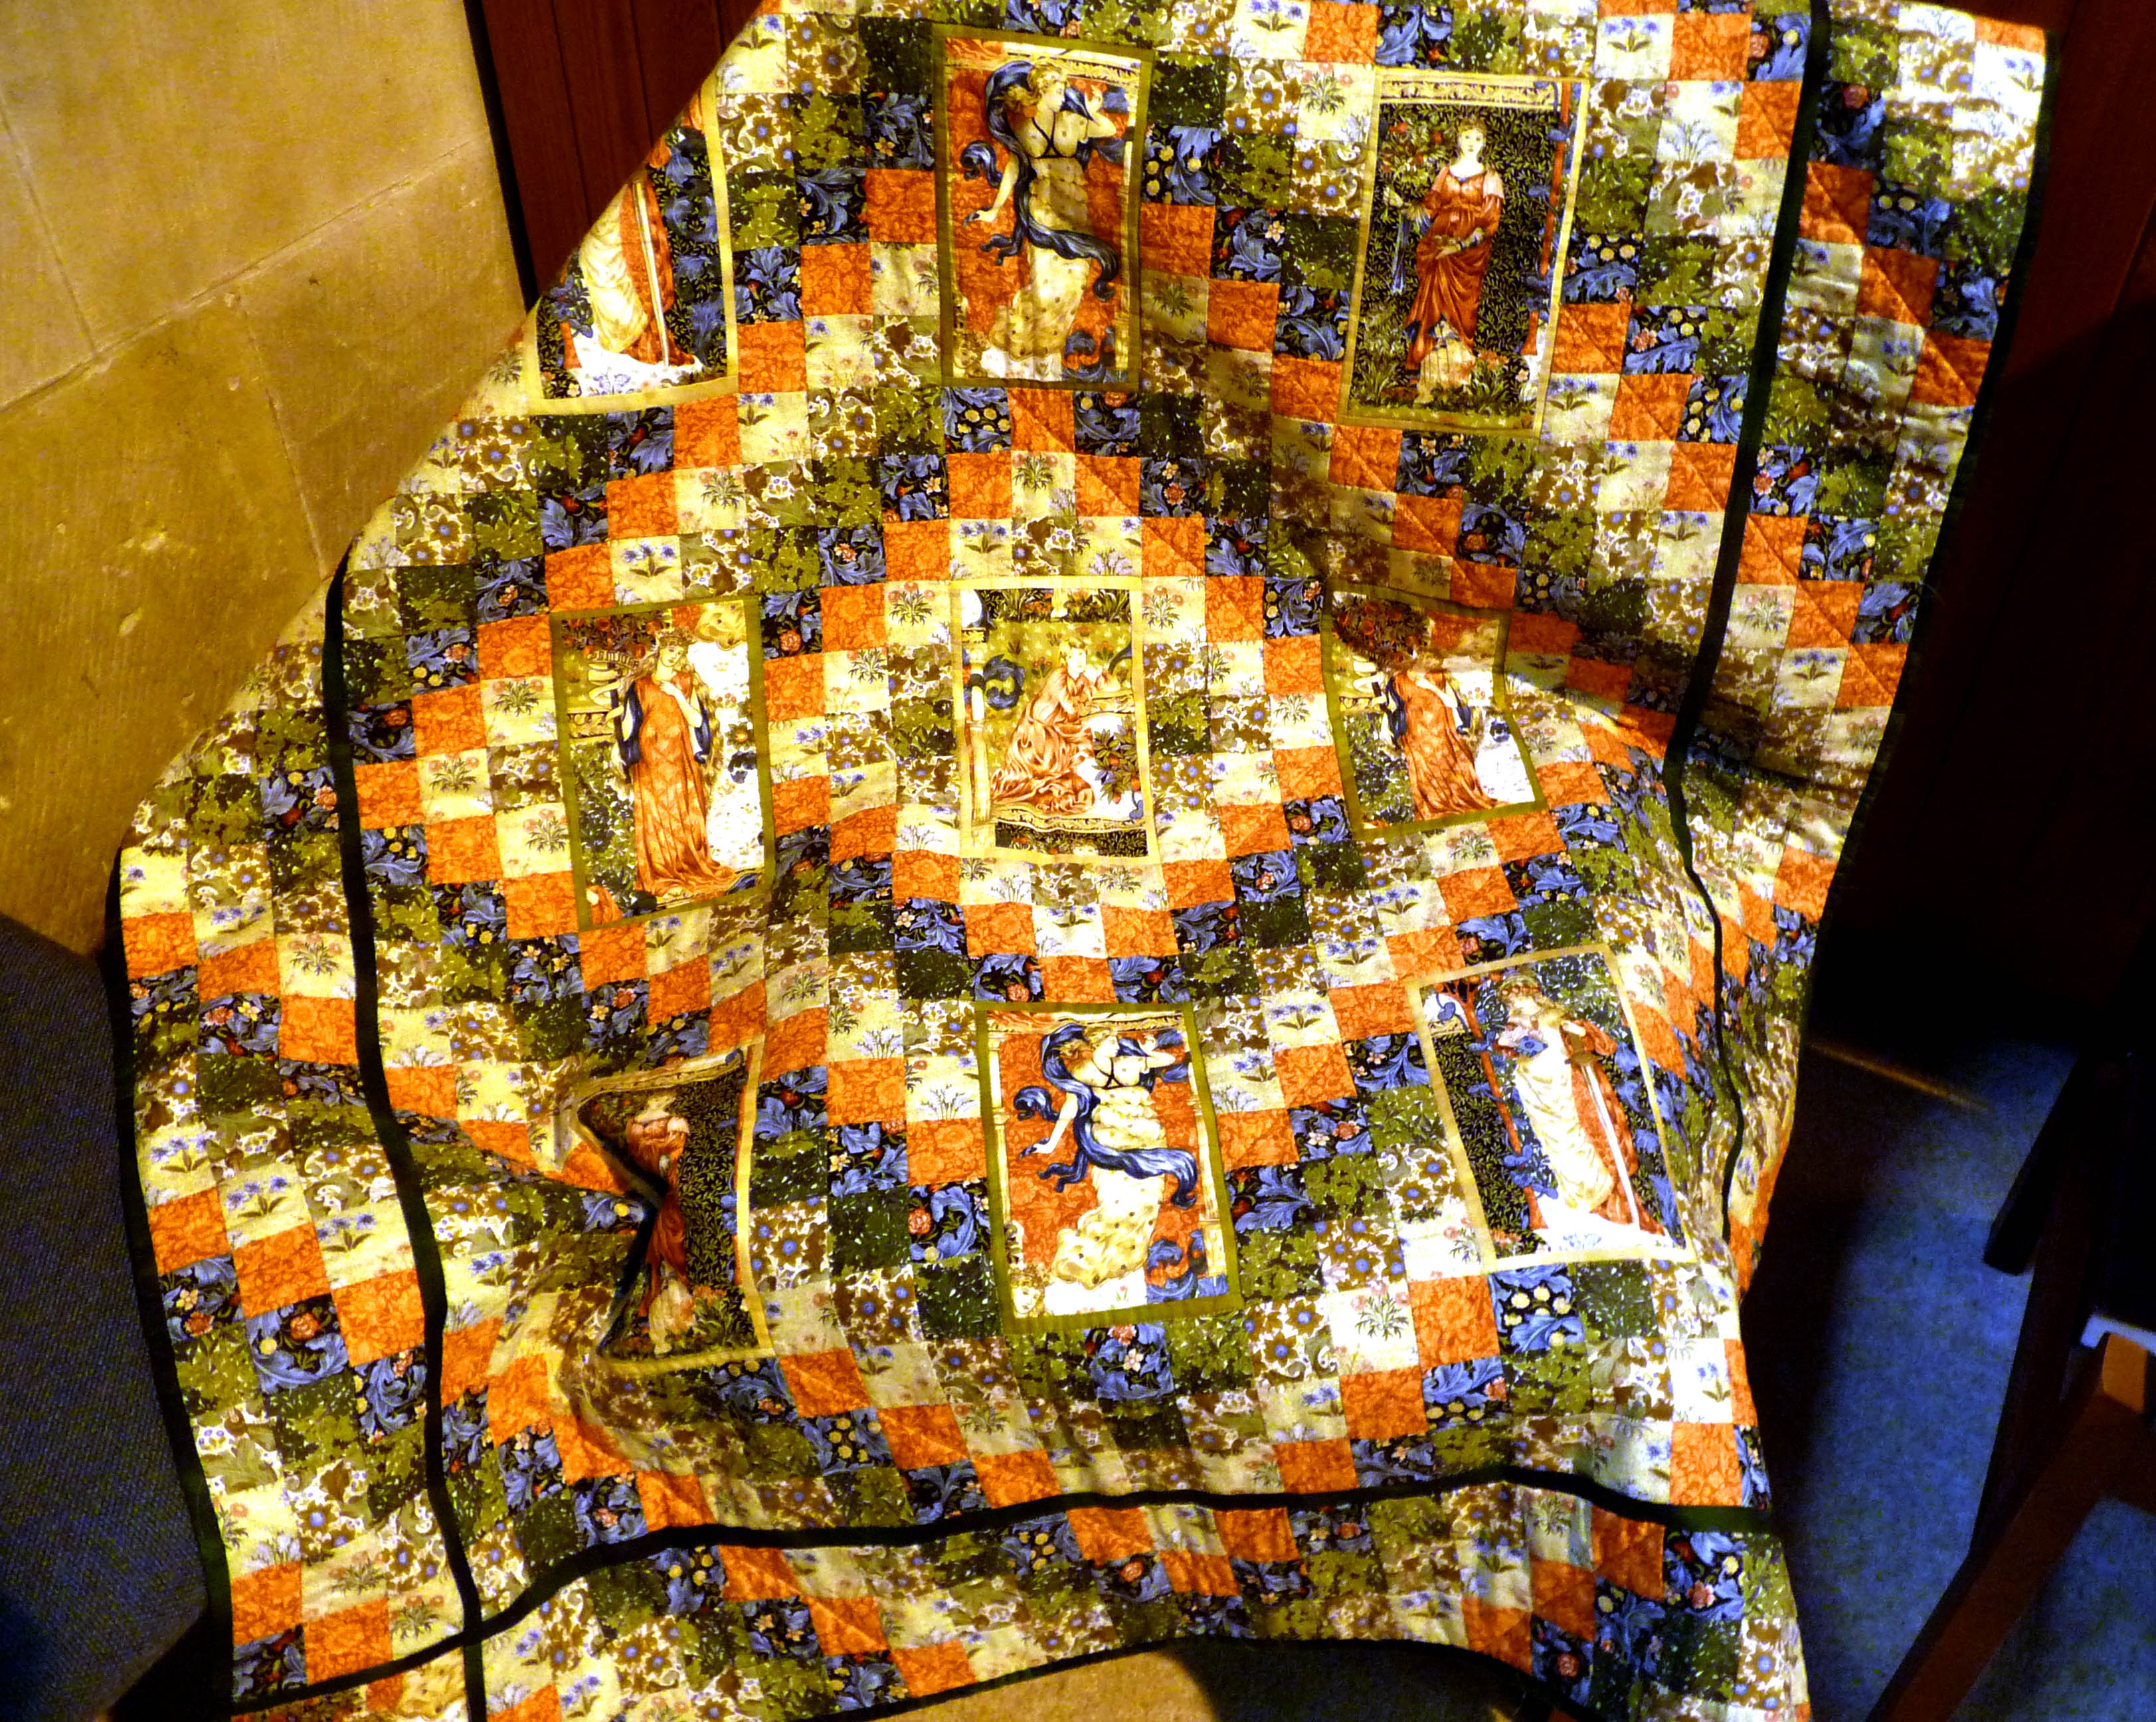 Quilt made by Gill Chamberlain, Stitchin' Sisters Group